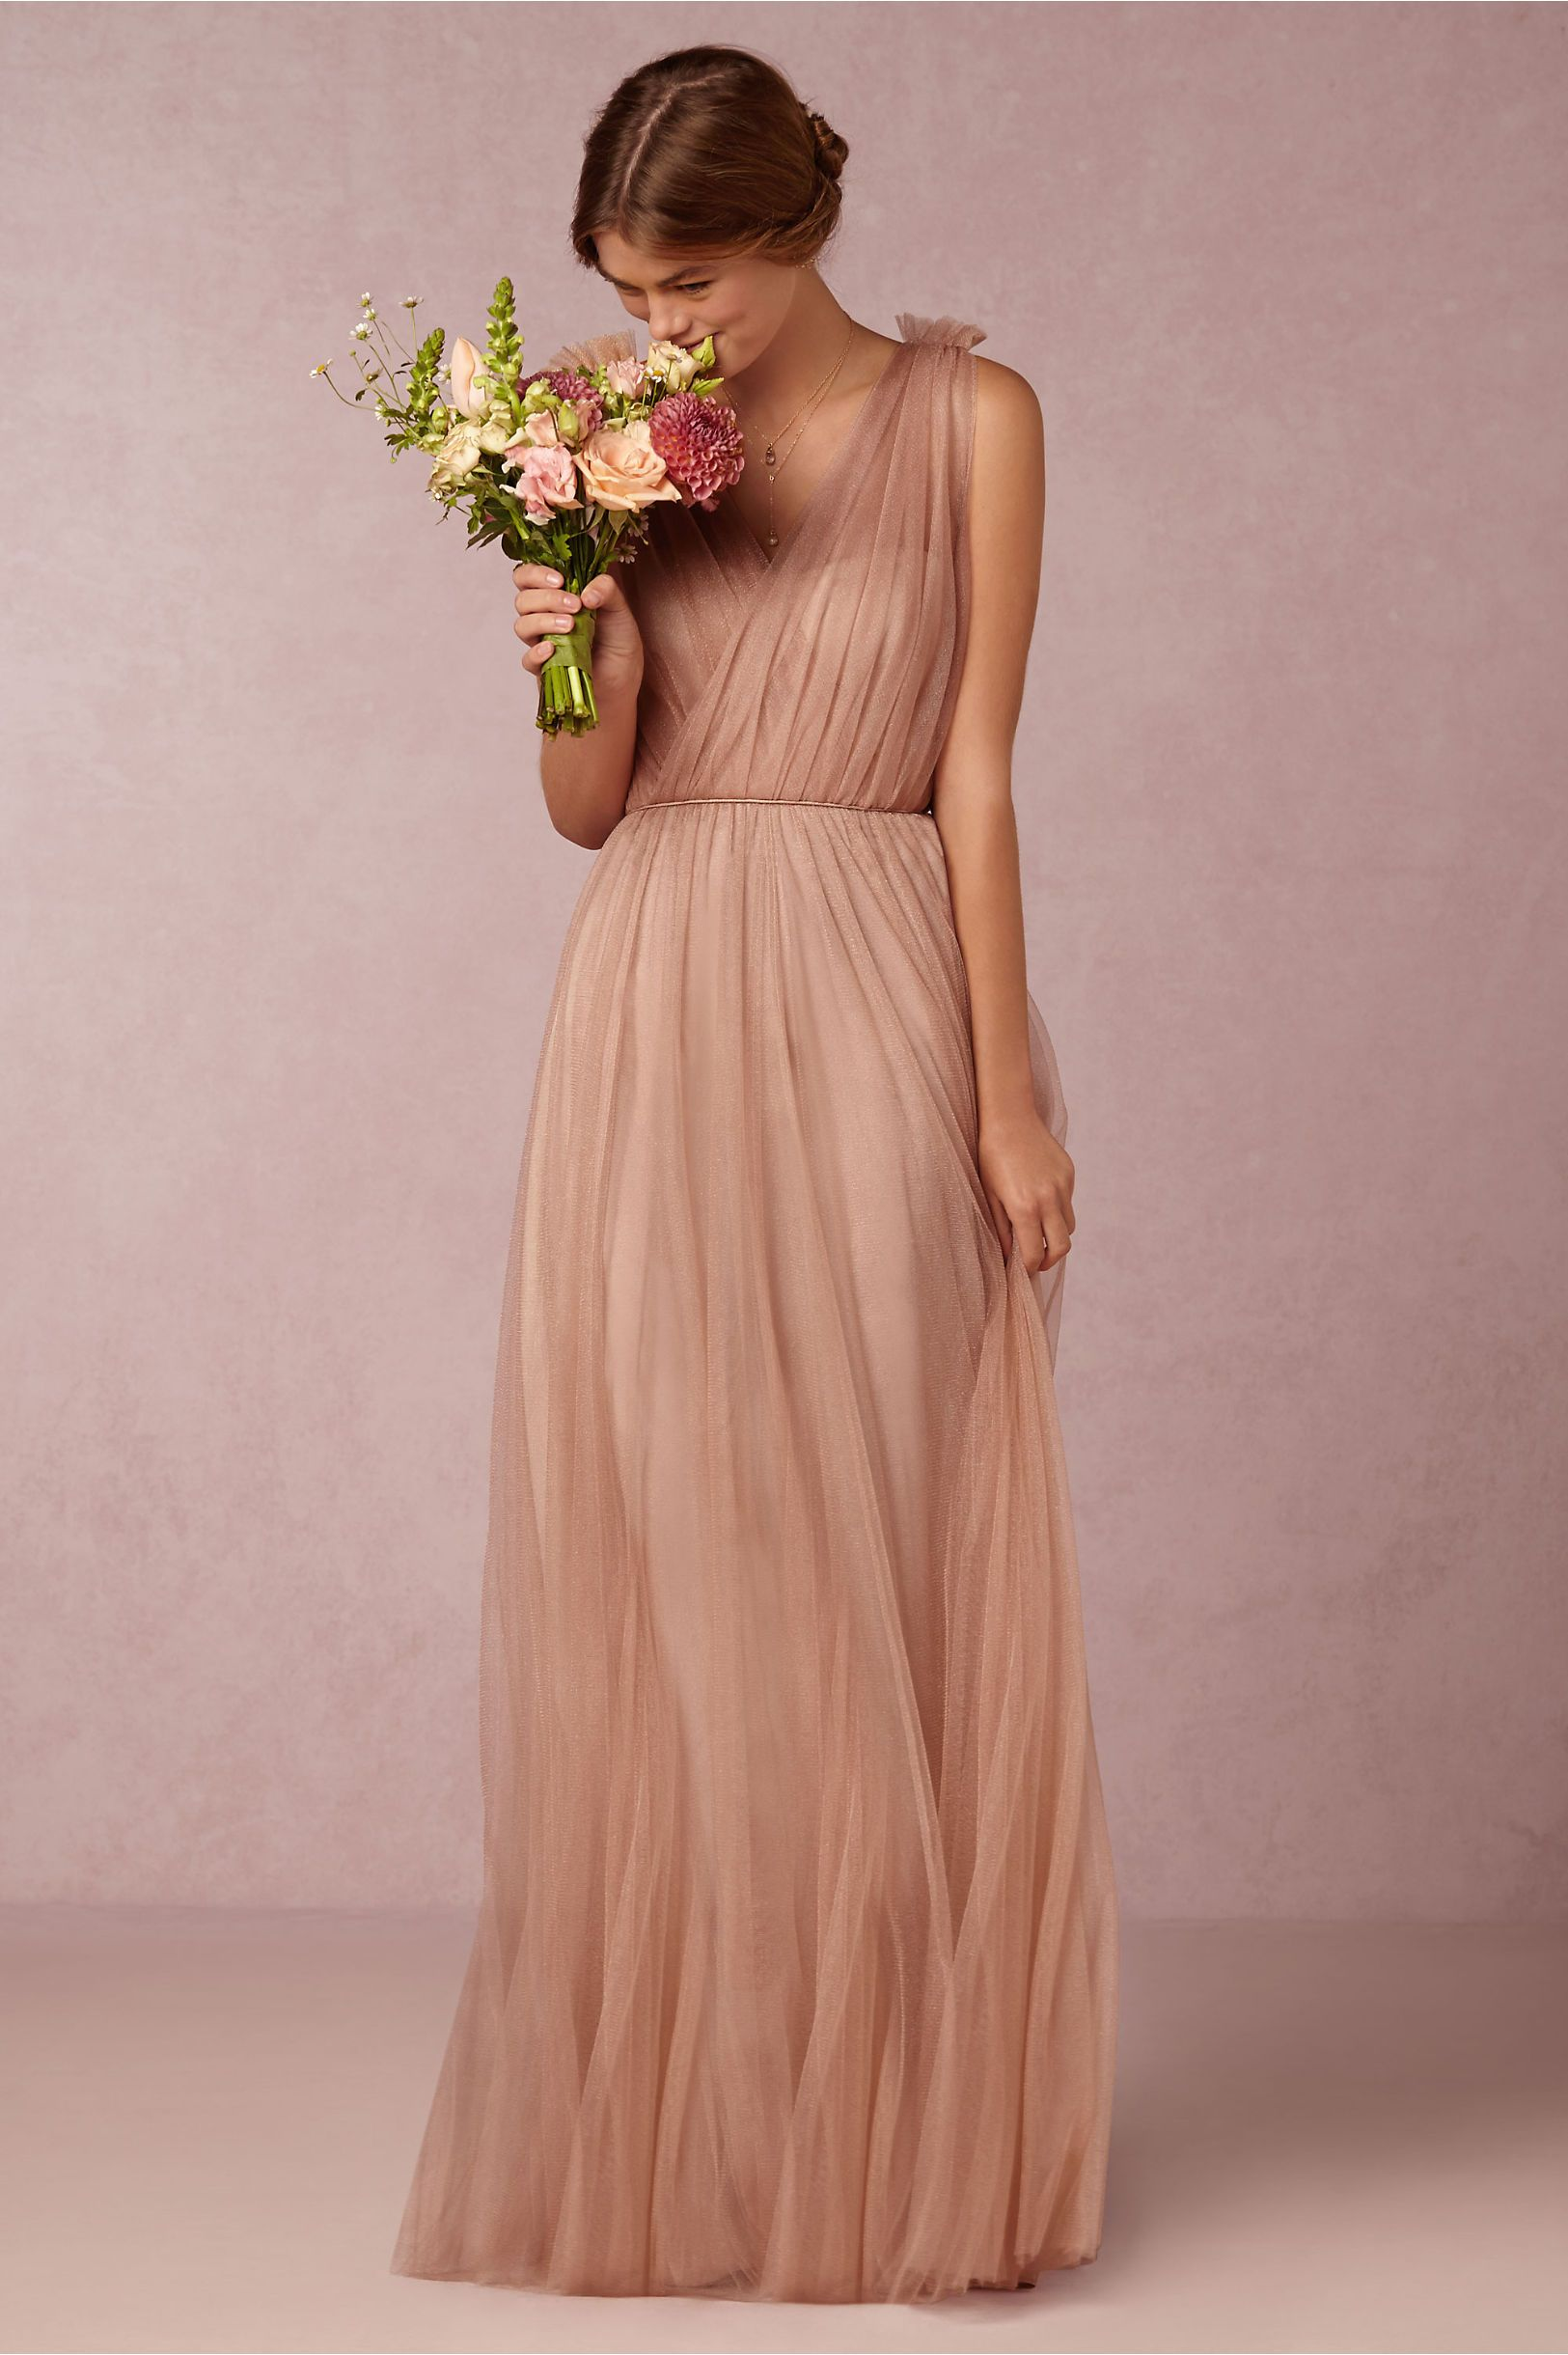 Long pink tulle bridesmaid dress emmy dress in feather from bhldn